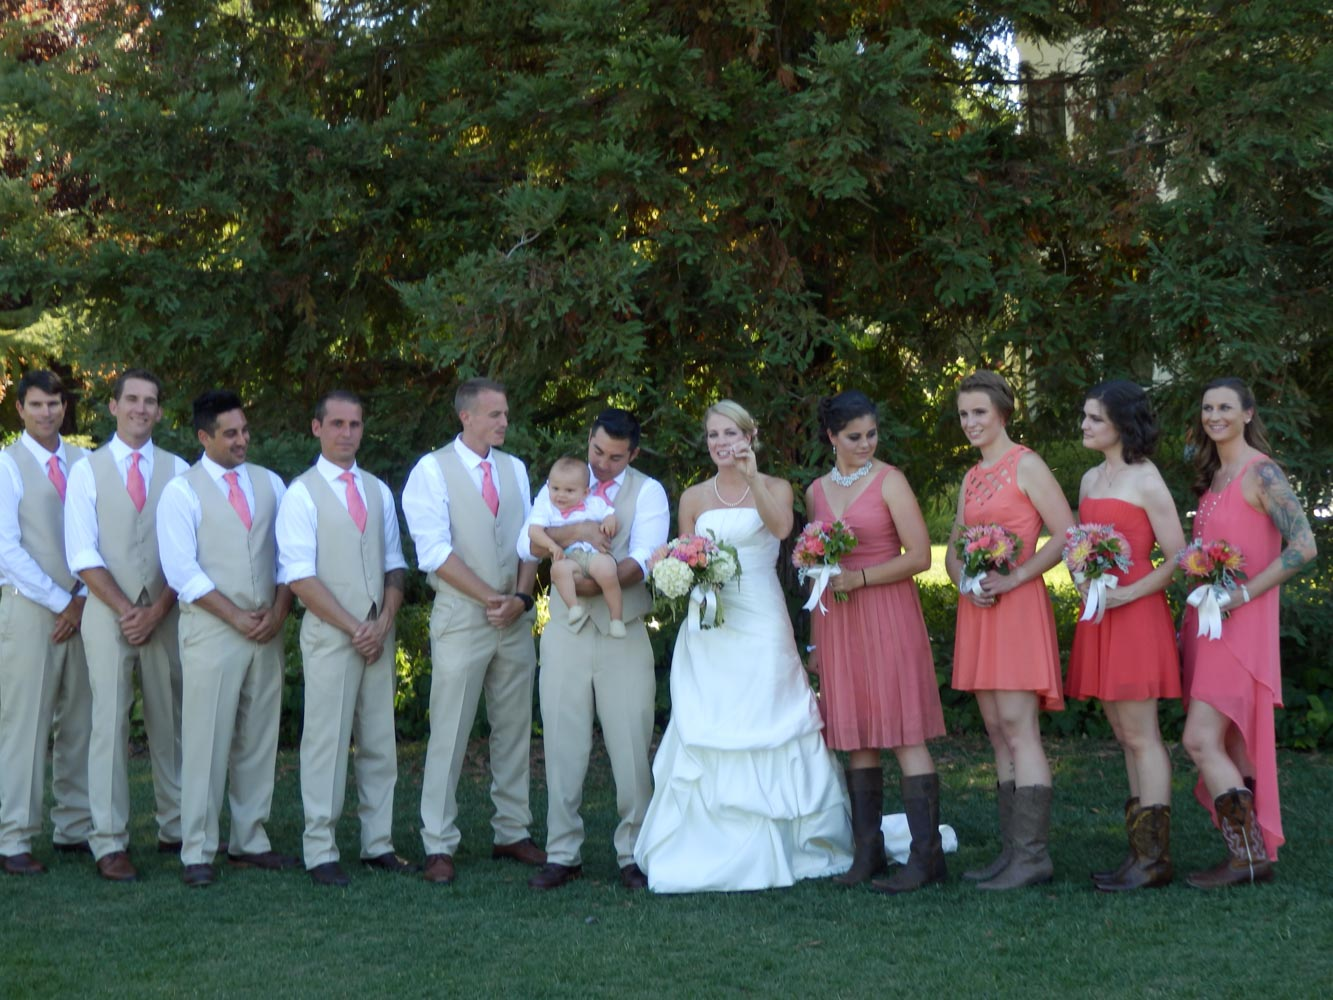 Bride and groom and large wedding party on the ceremony grounds of Inn at Park Winters